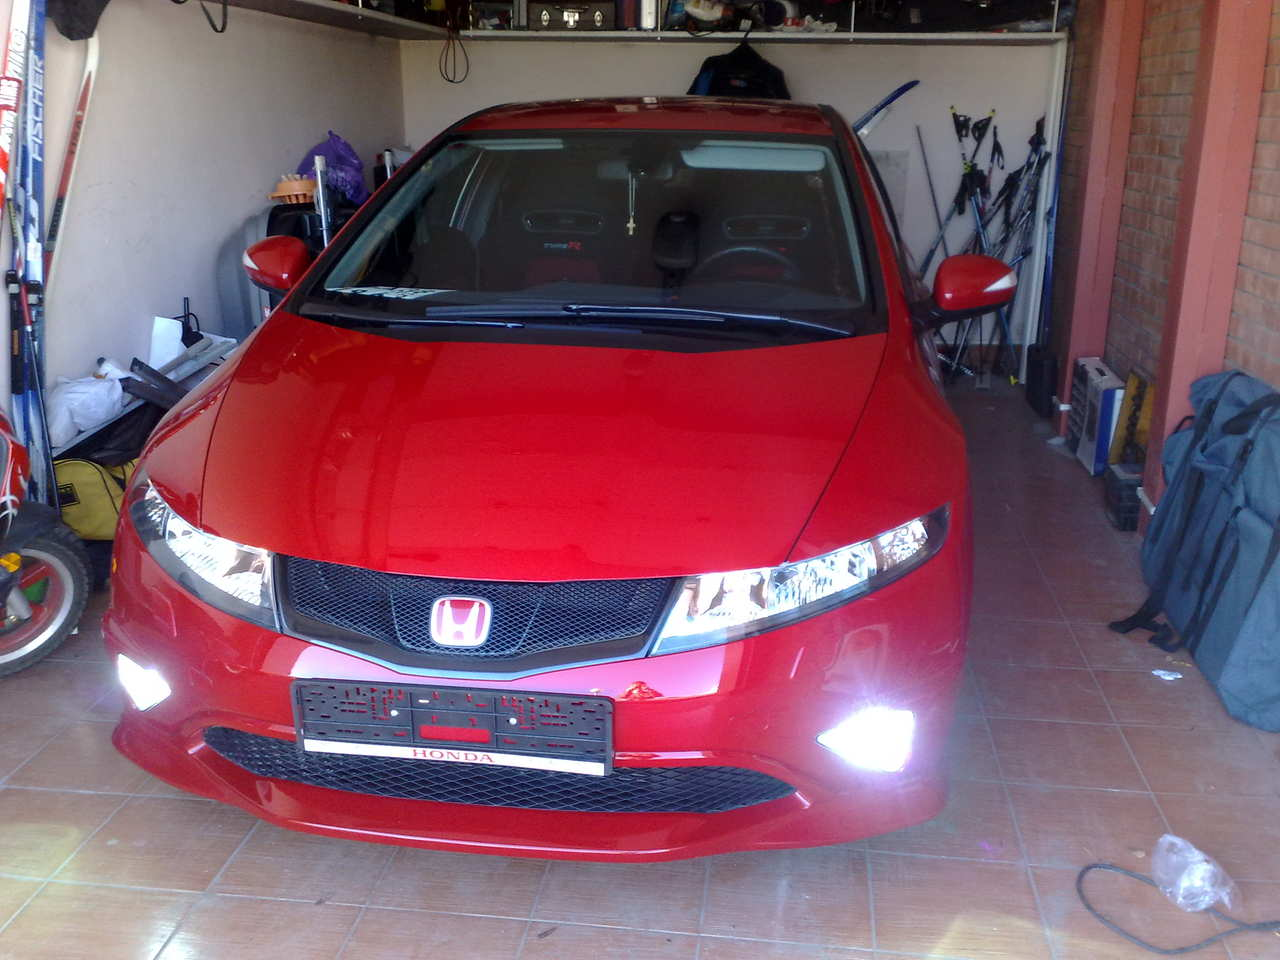 used 2008 honda civic type r photos 2000cc gasoline ff manual for sale. Black Bedroom Furniture Sets. Home Design Ideas